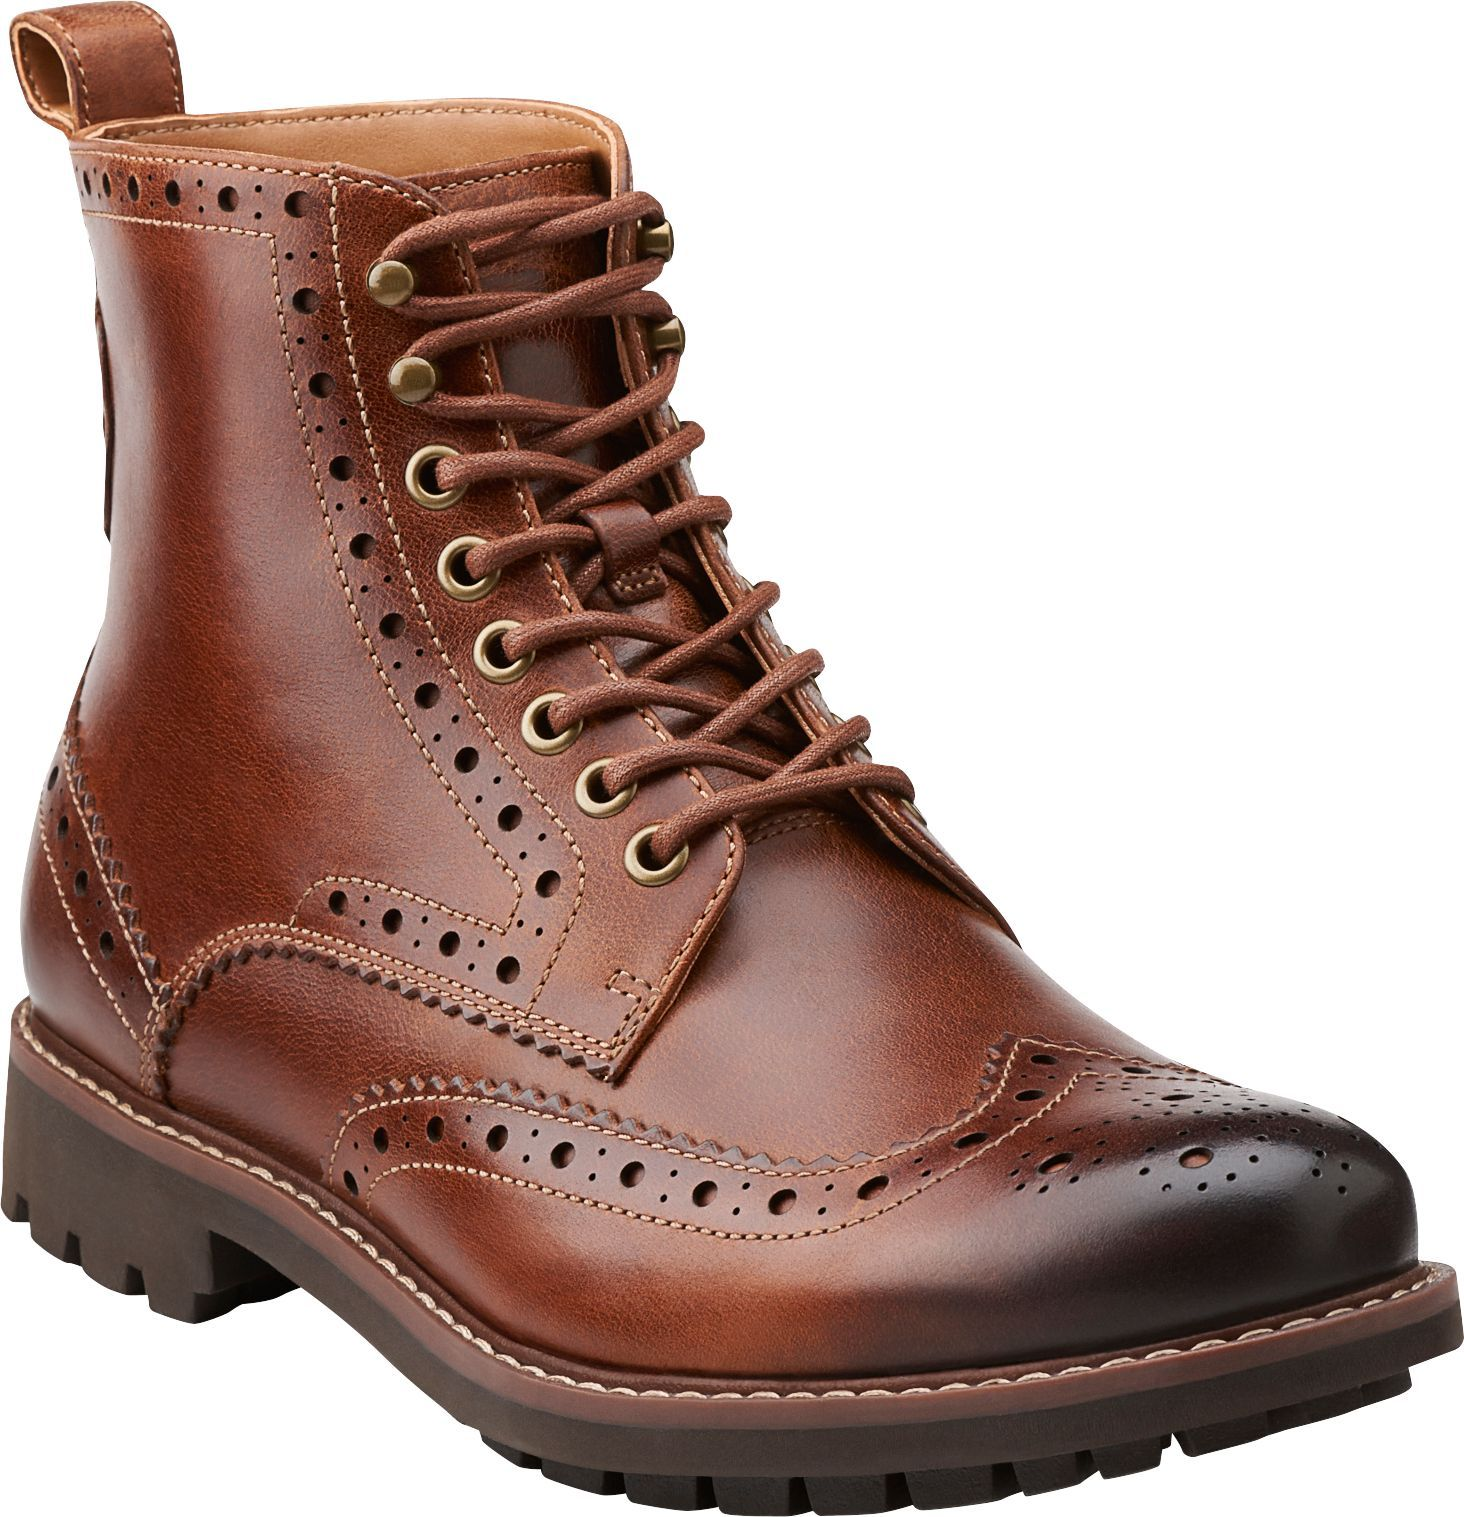 Clarks Montacute Lord Chukka Boot CLEARANCE in 2019 | Mens